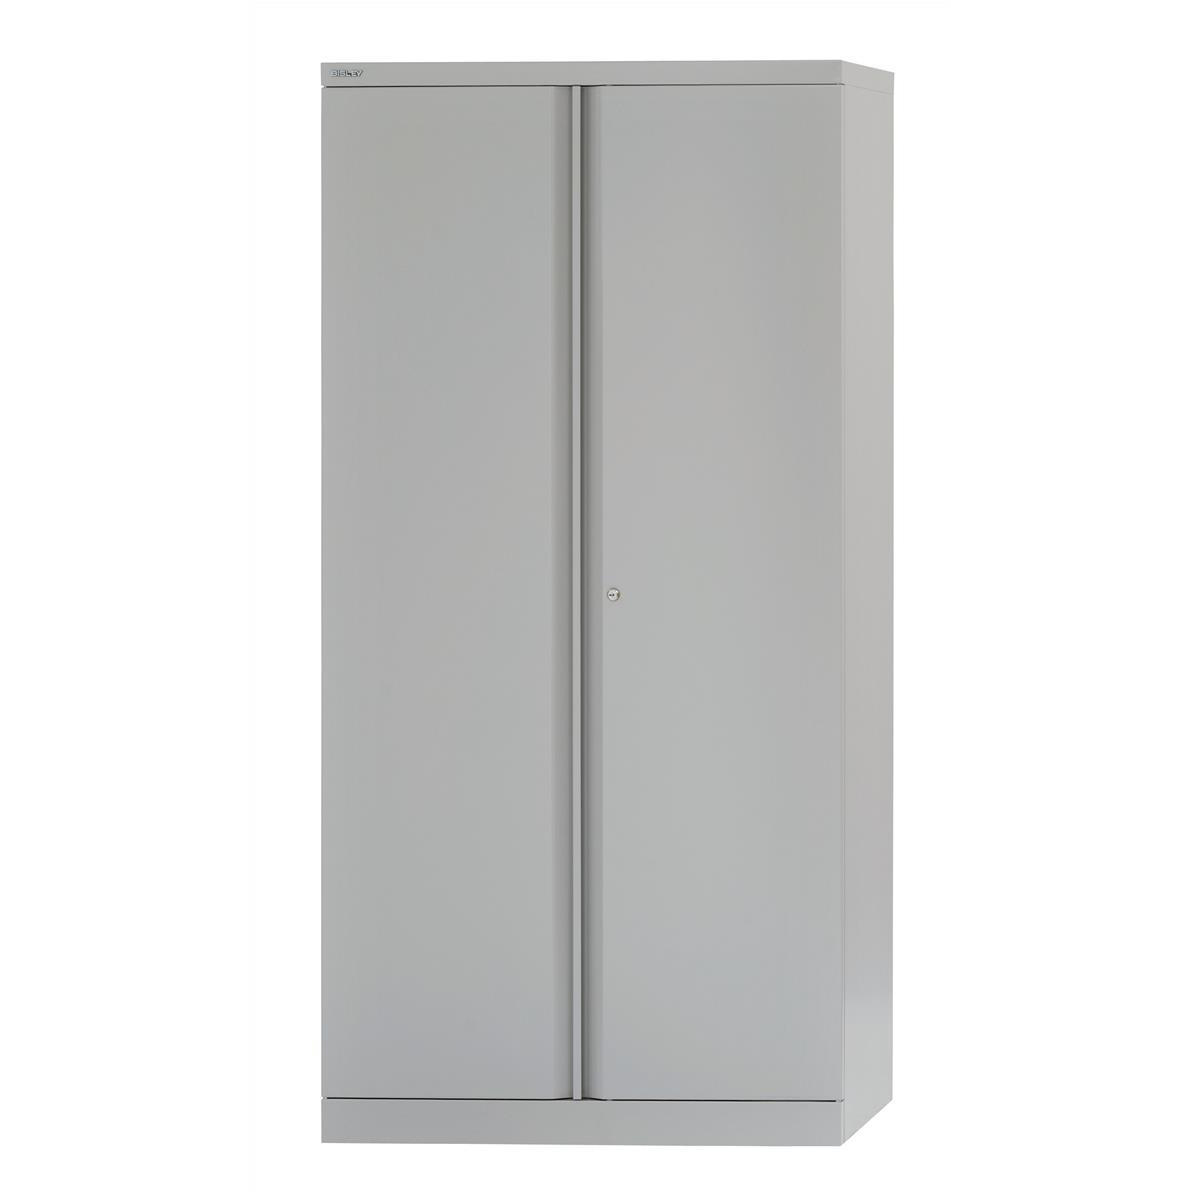 Bisley Two Door Steel Storage Cupboard 914x470x1970-1985mm with shelves Grey Ref 7236/2/S